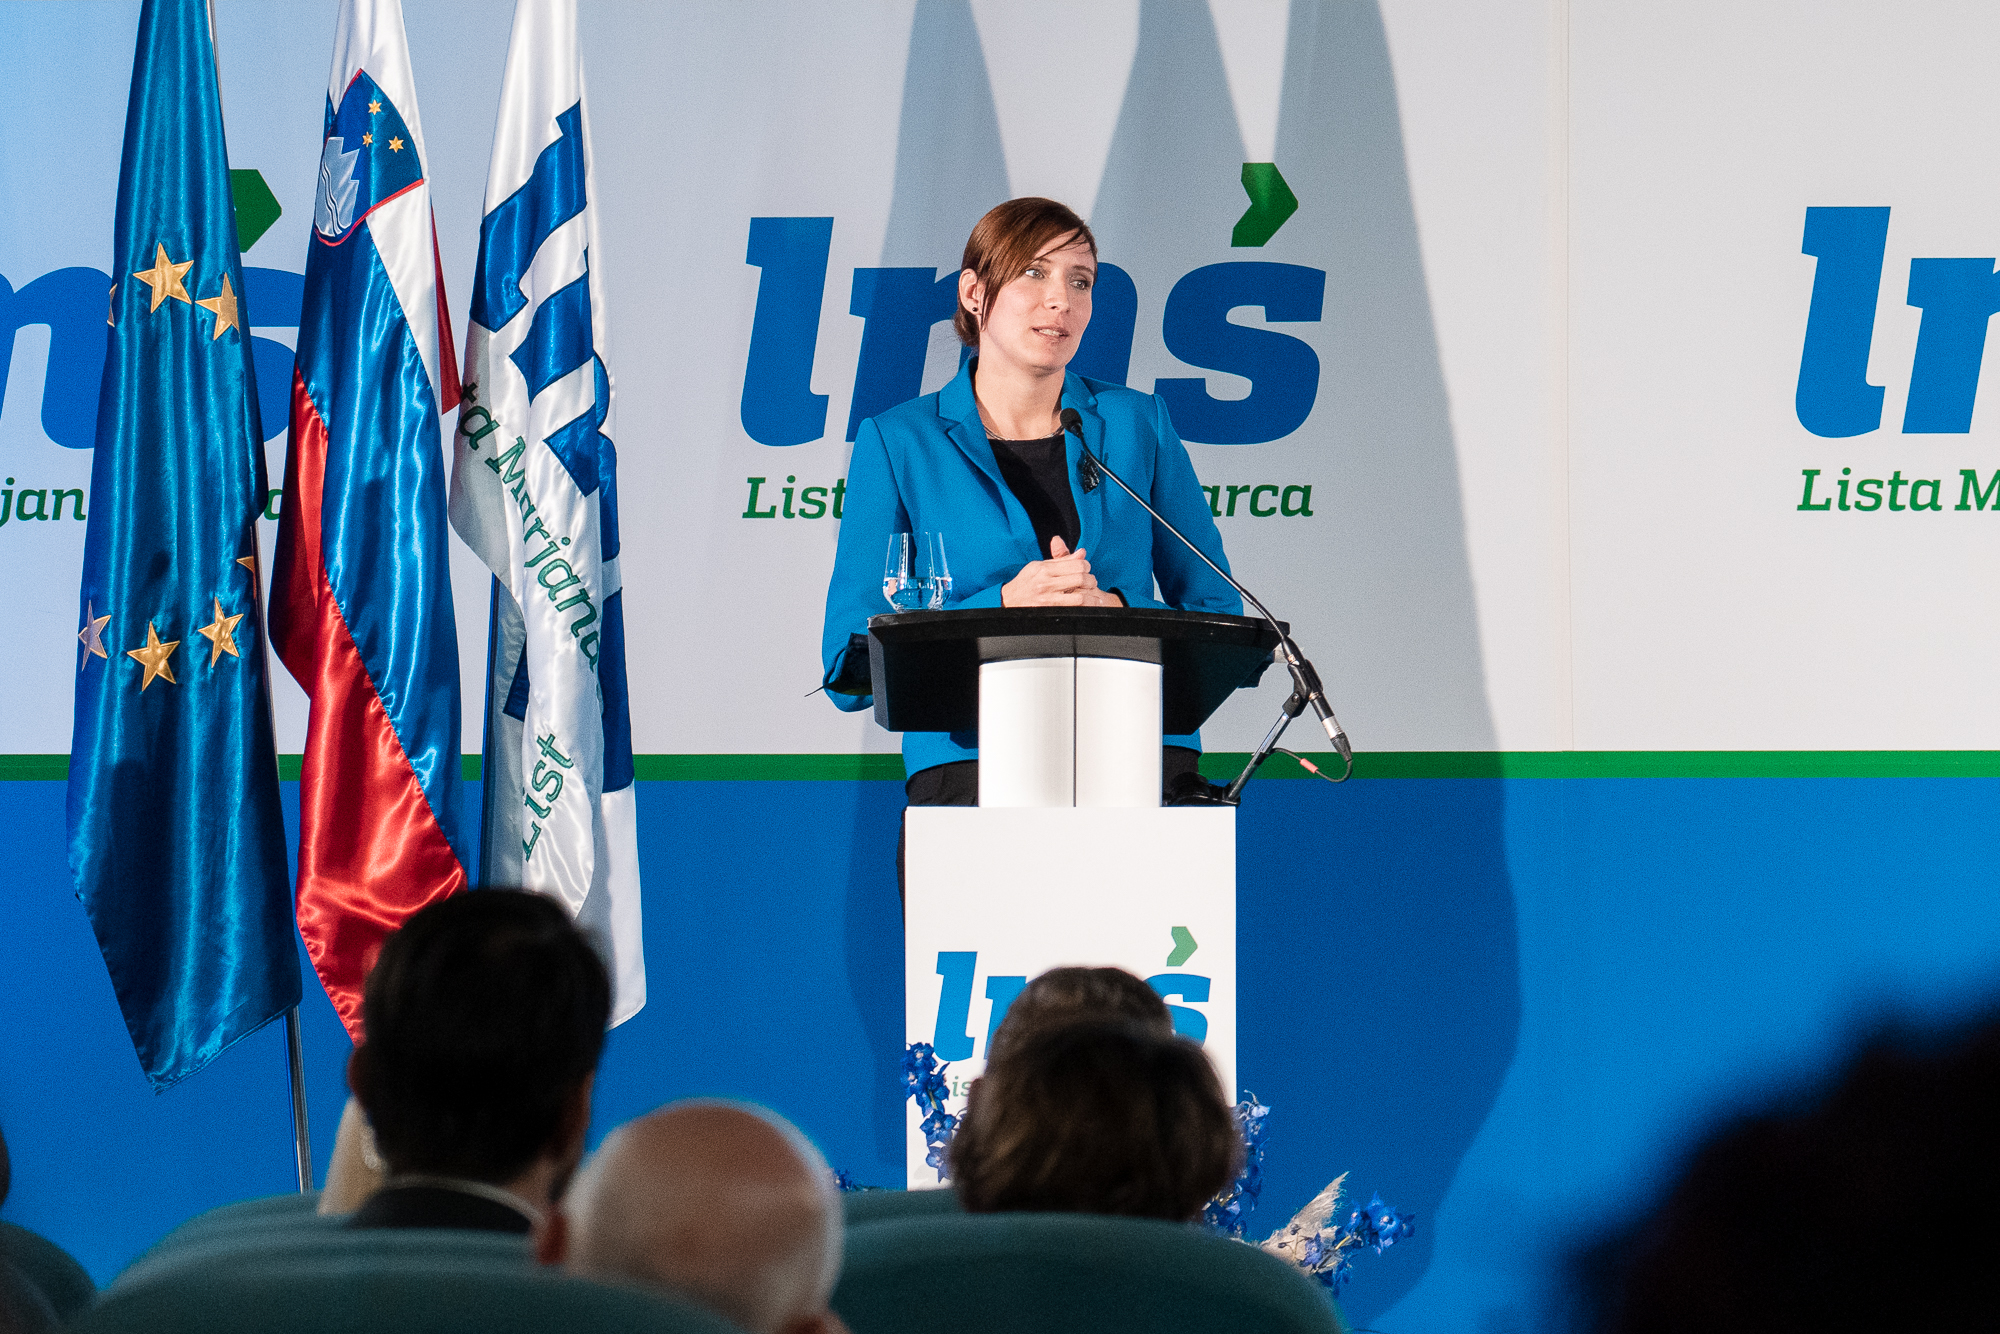 Jasna Gabrič, Mayor of Municipality of Trbovlje, on the stage at the Fifth Congress of Lista Marjana Šarca in Trbovlje